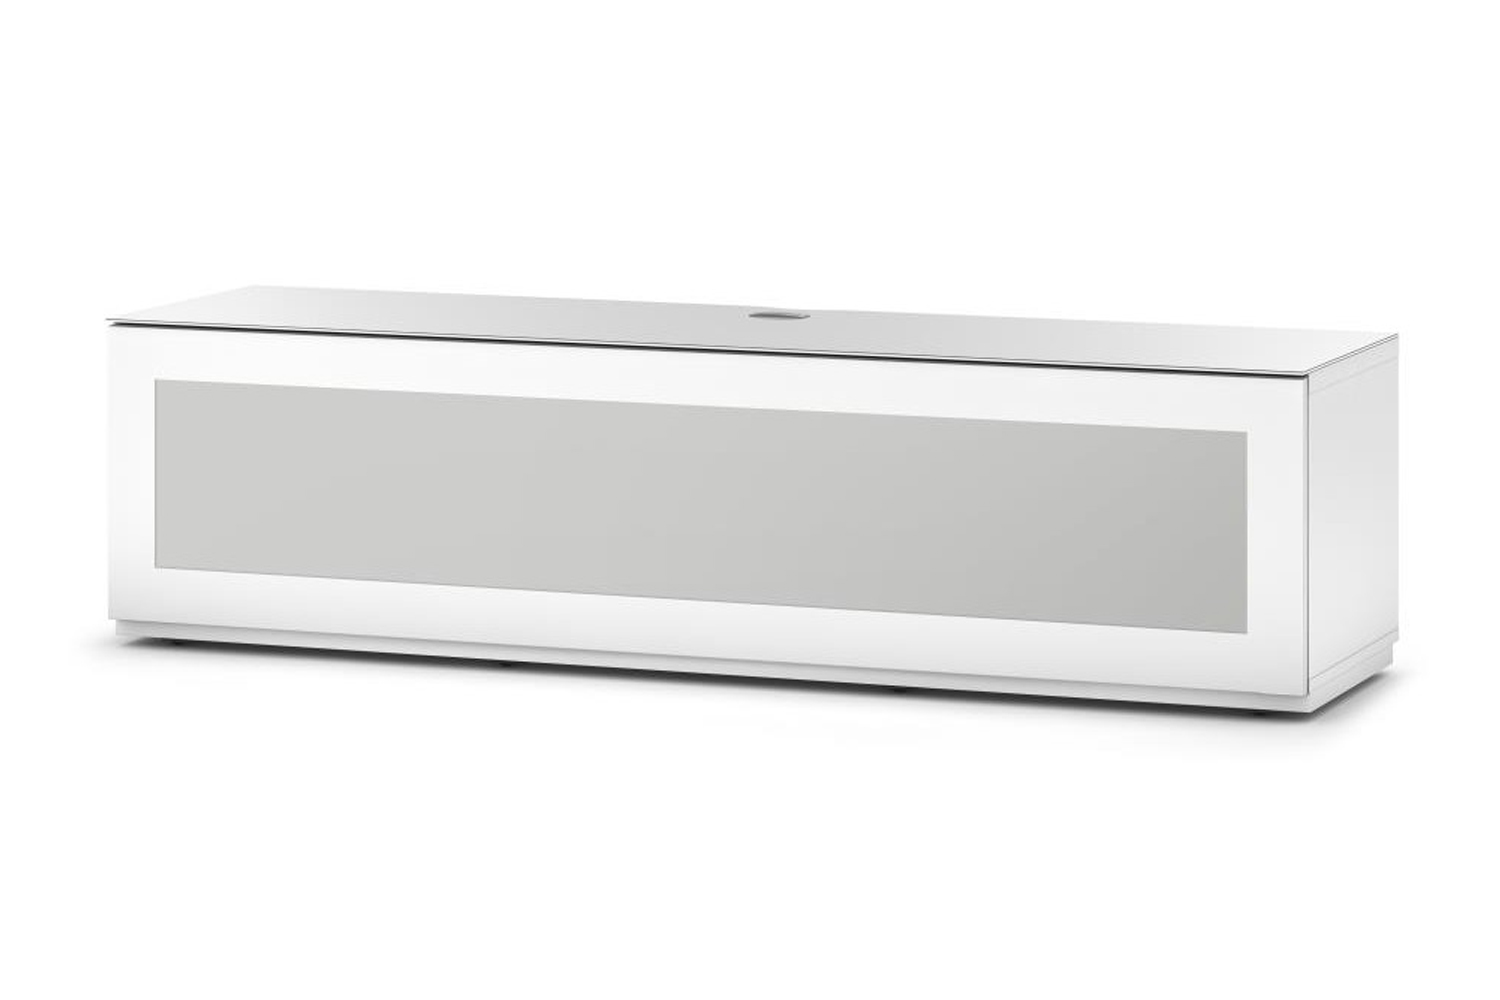 Sonorous Studio Series 1650mm TV/AV Cabinet - White | Harvey ...